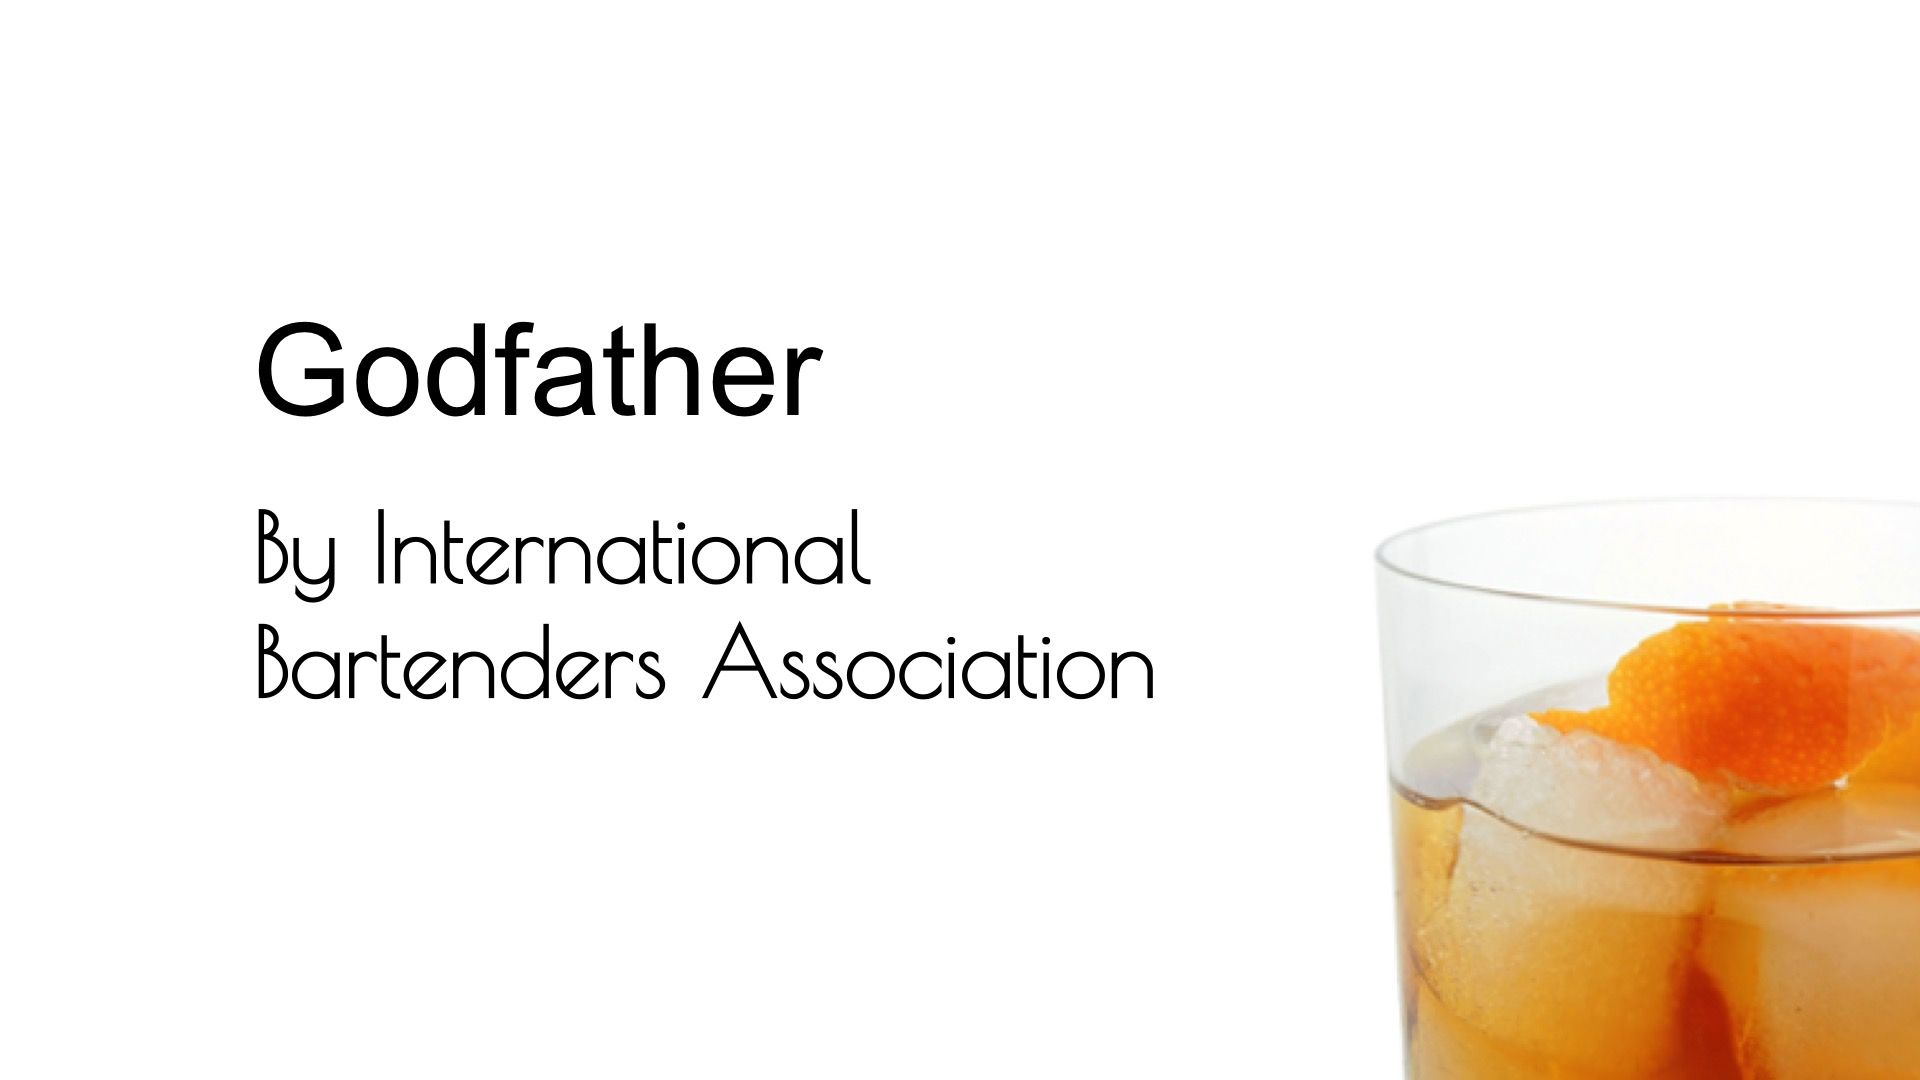 Video for Godfather (IBA) from Commonwealth Cocktails